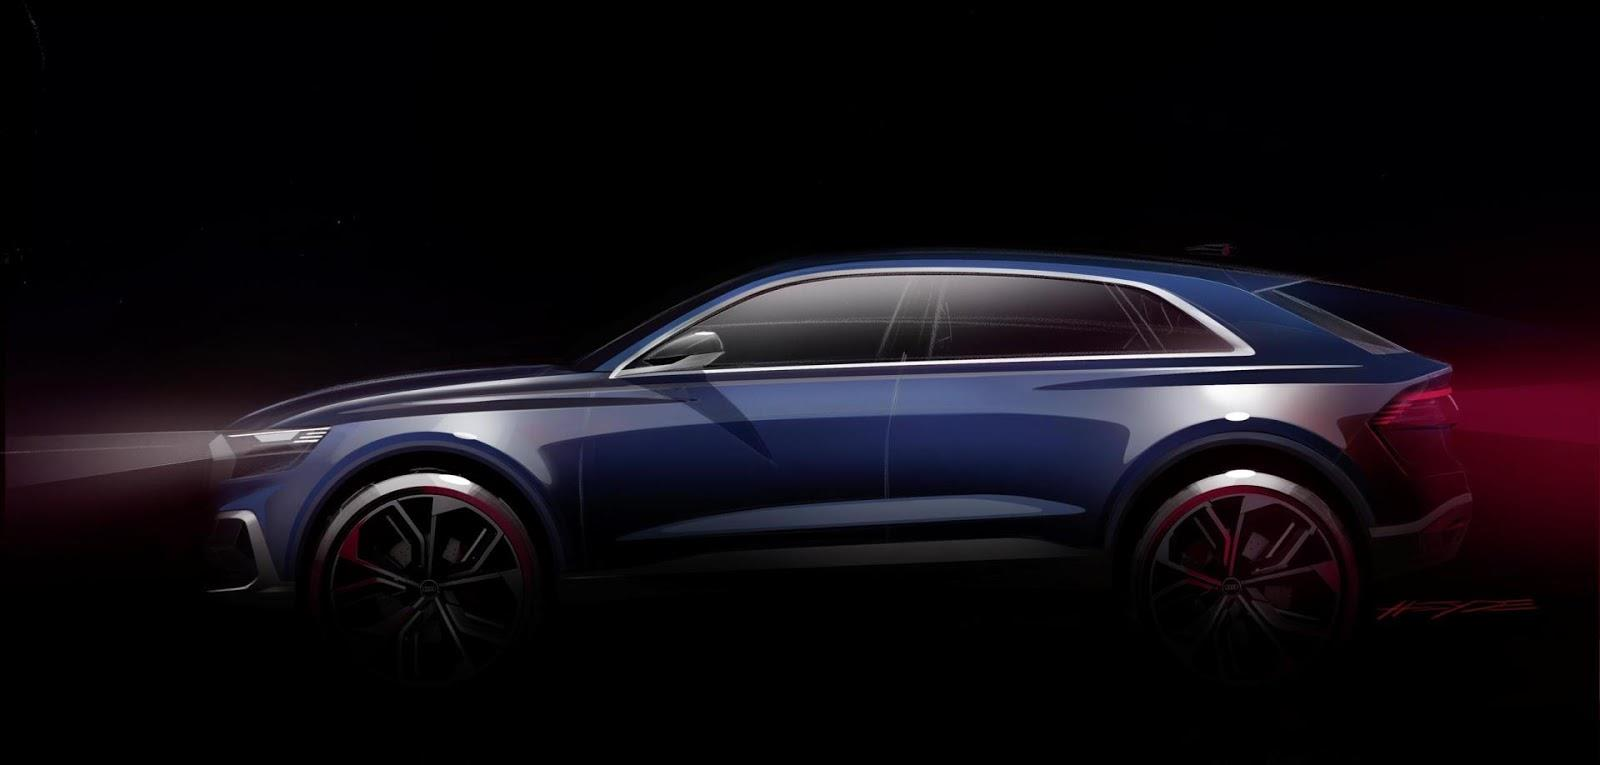 Audi Q8 concept teased ahead of Detroit reveal